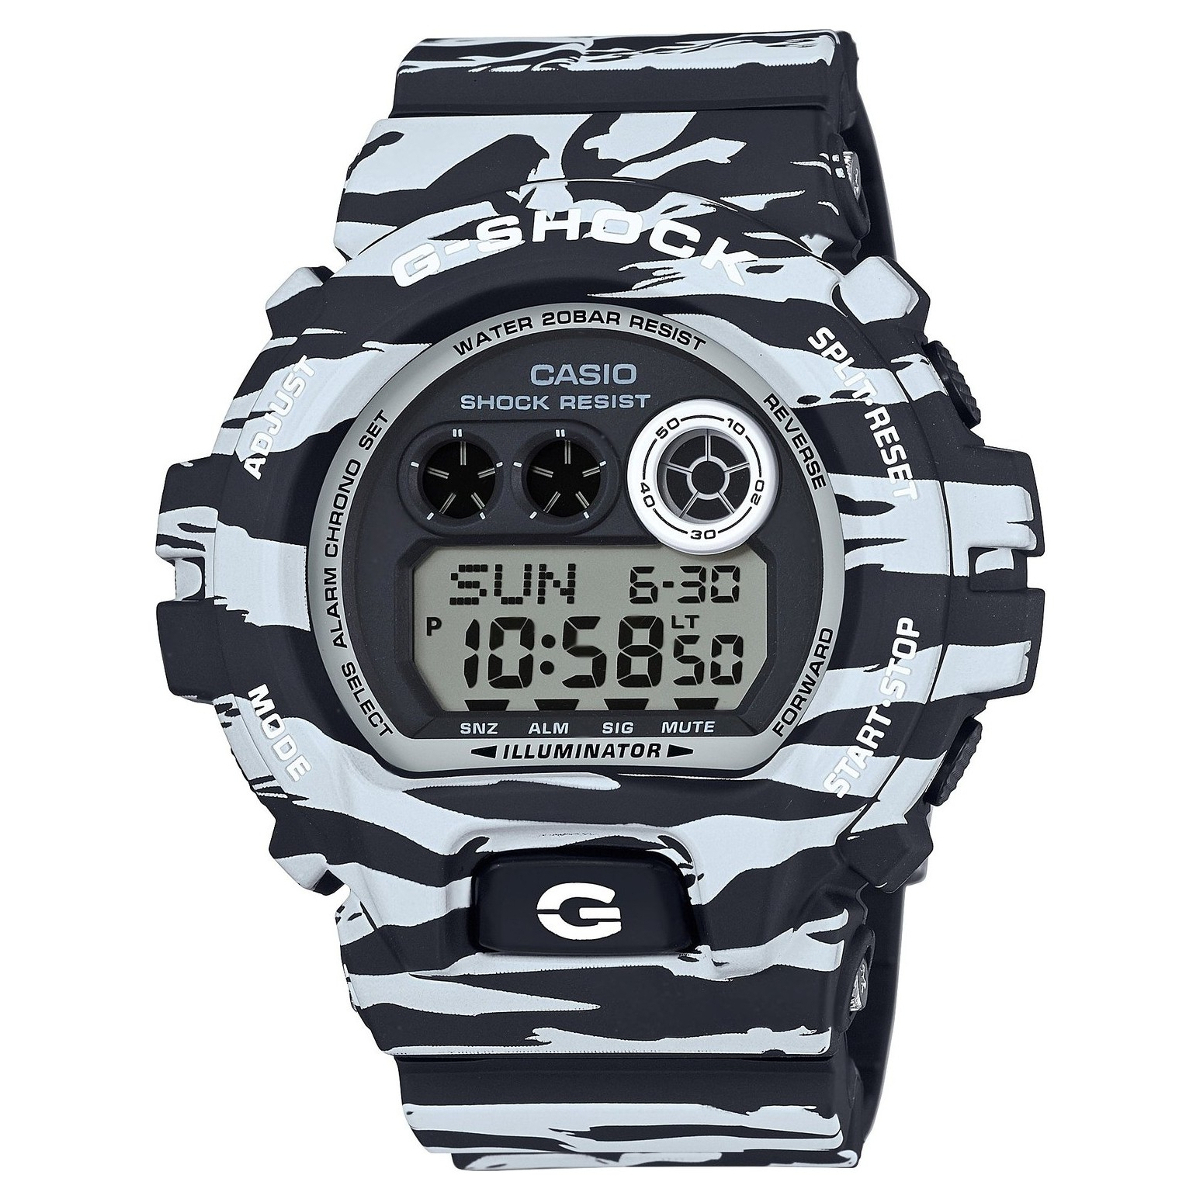 Casio G-shock GD-X6900BW-1E casio gd 400 4